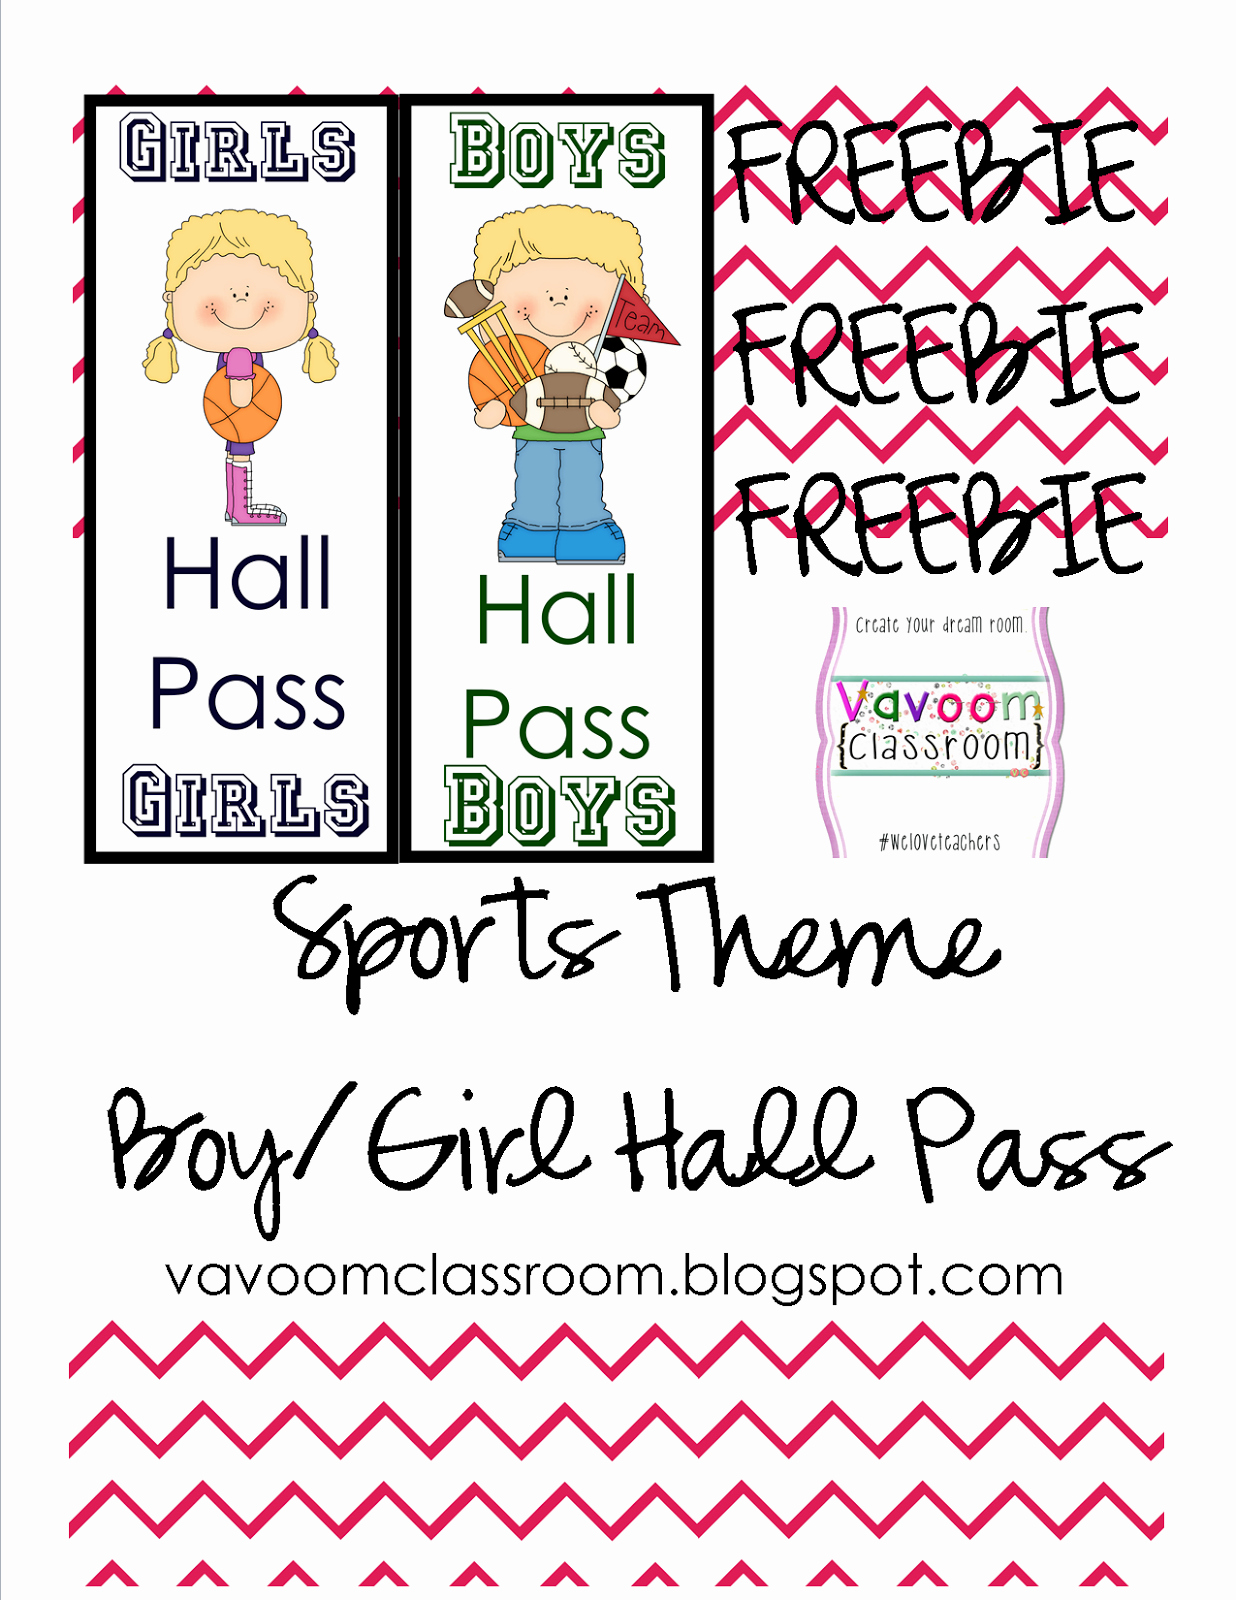 Printable Hall Passes for Students New Vavoom Classroom Sports theme Classroom Kit Hall Passes